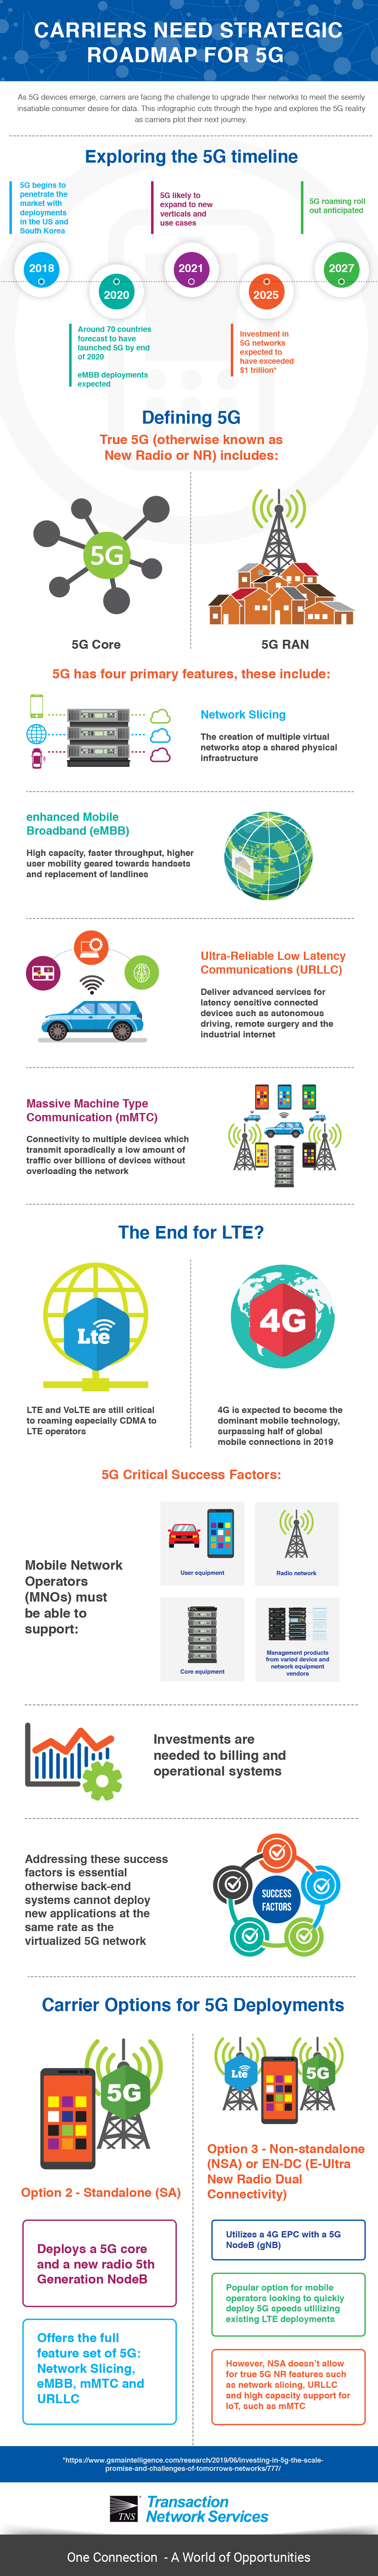 Carriers Need Strategic Roadmap for 5G